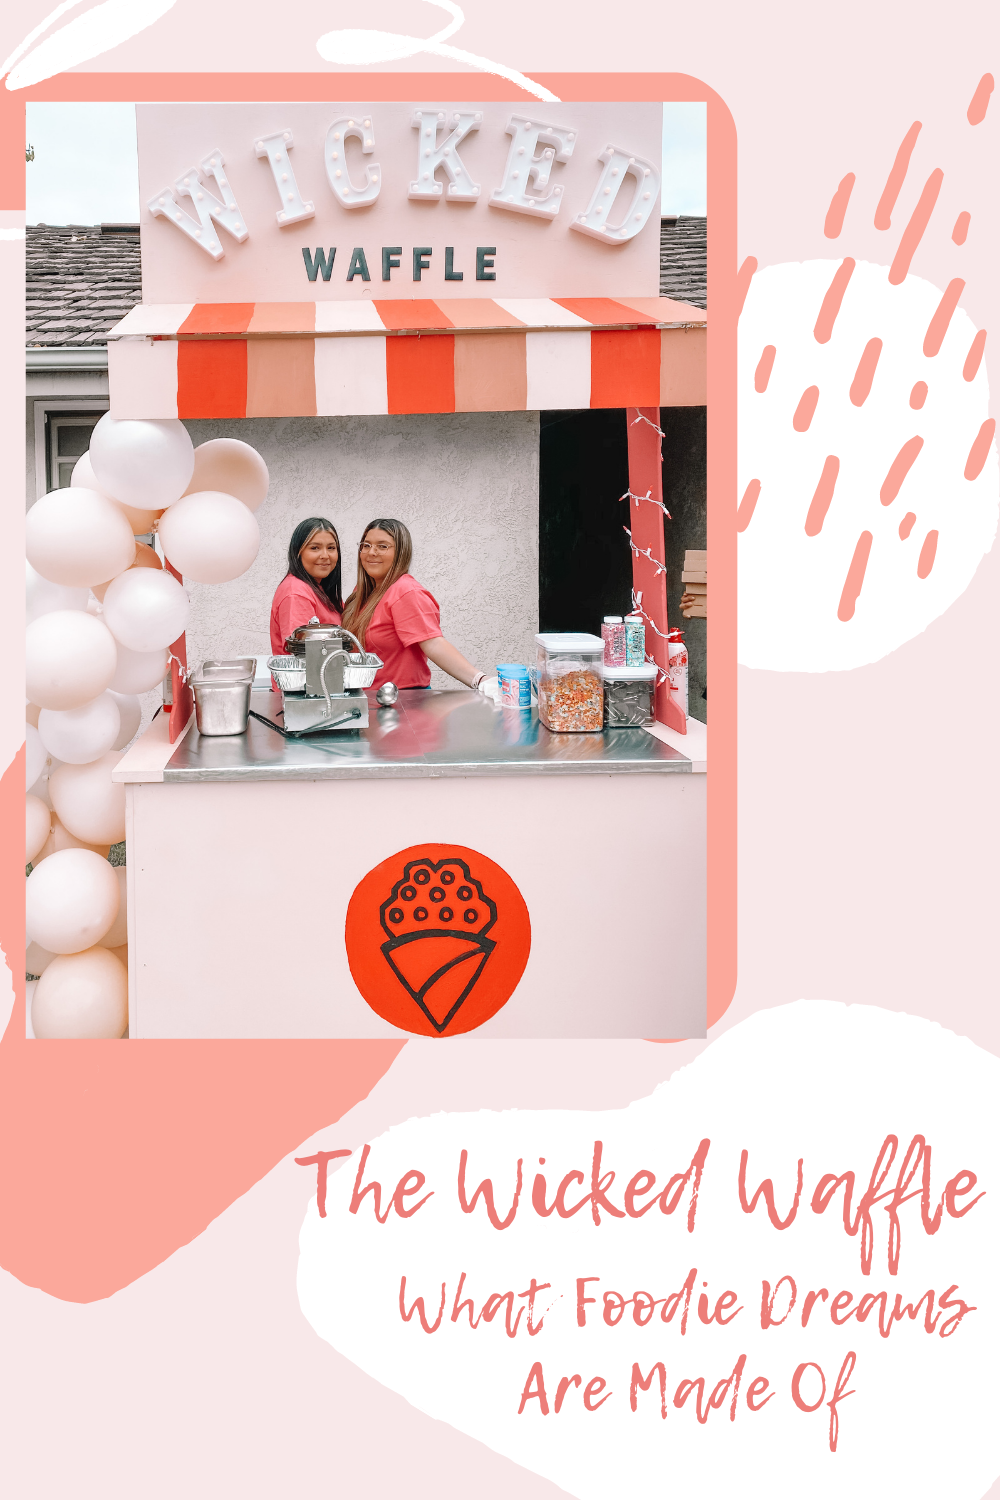 The Wicked Waffle- What Foodie Dreams Are Made Of